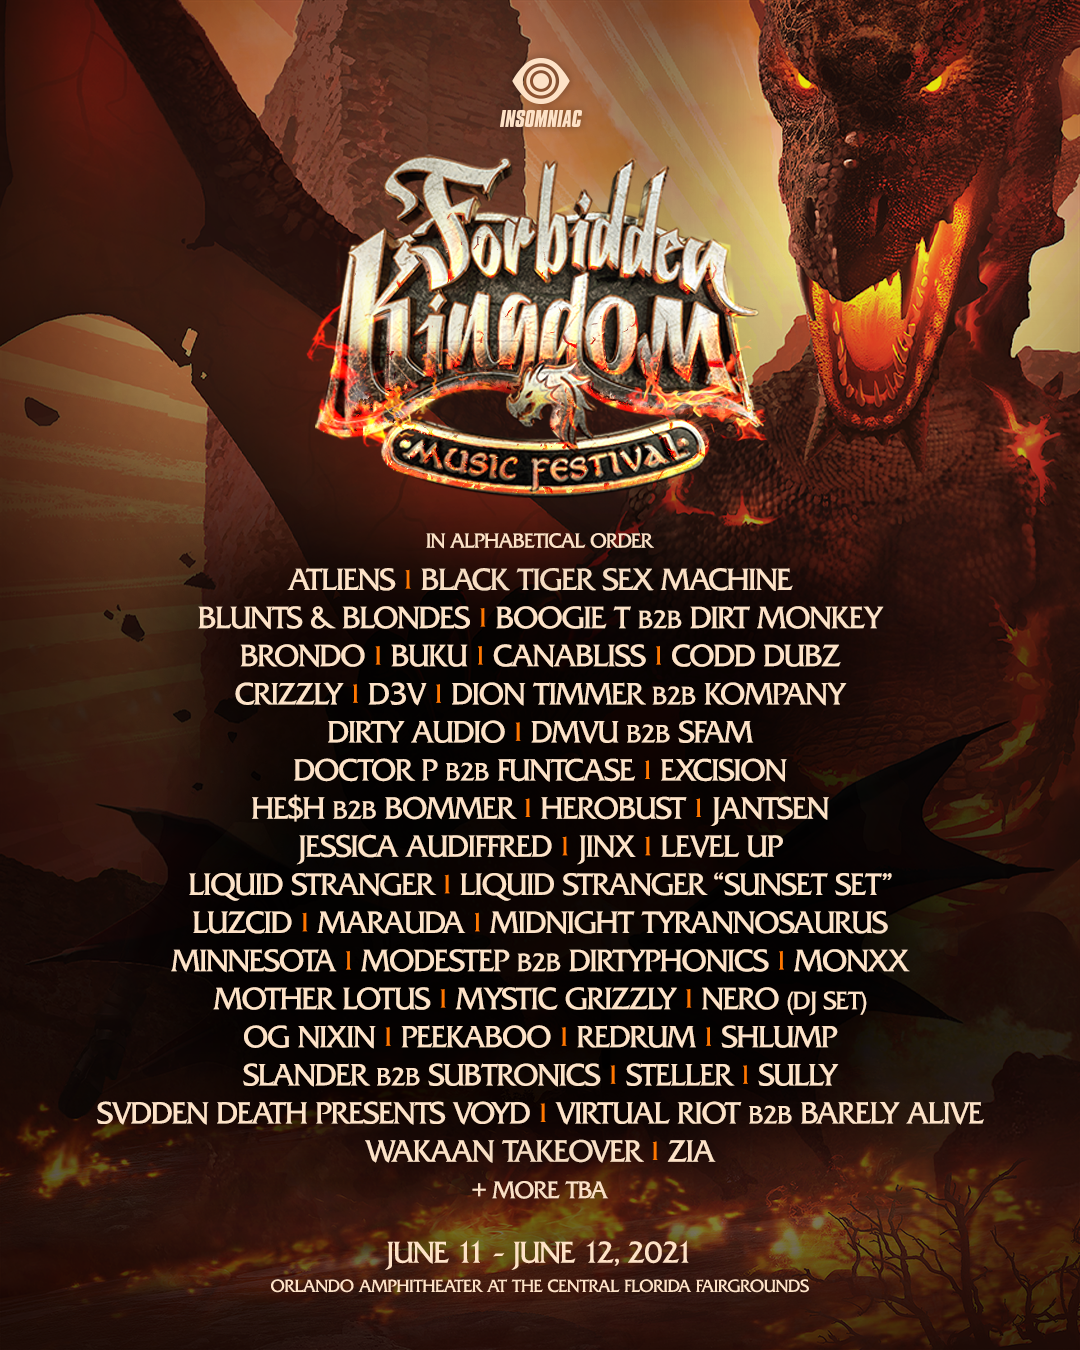 Forbidden Kingdom Lineup